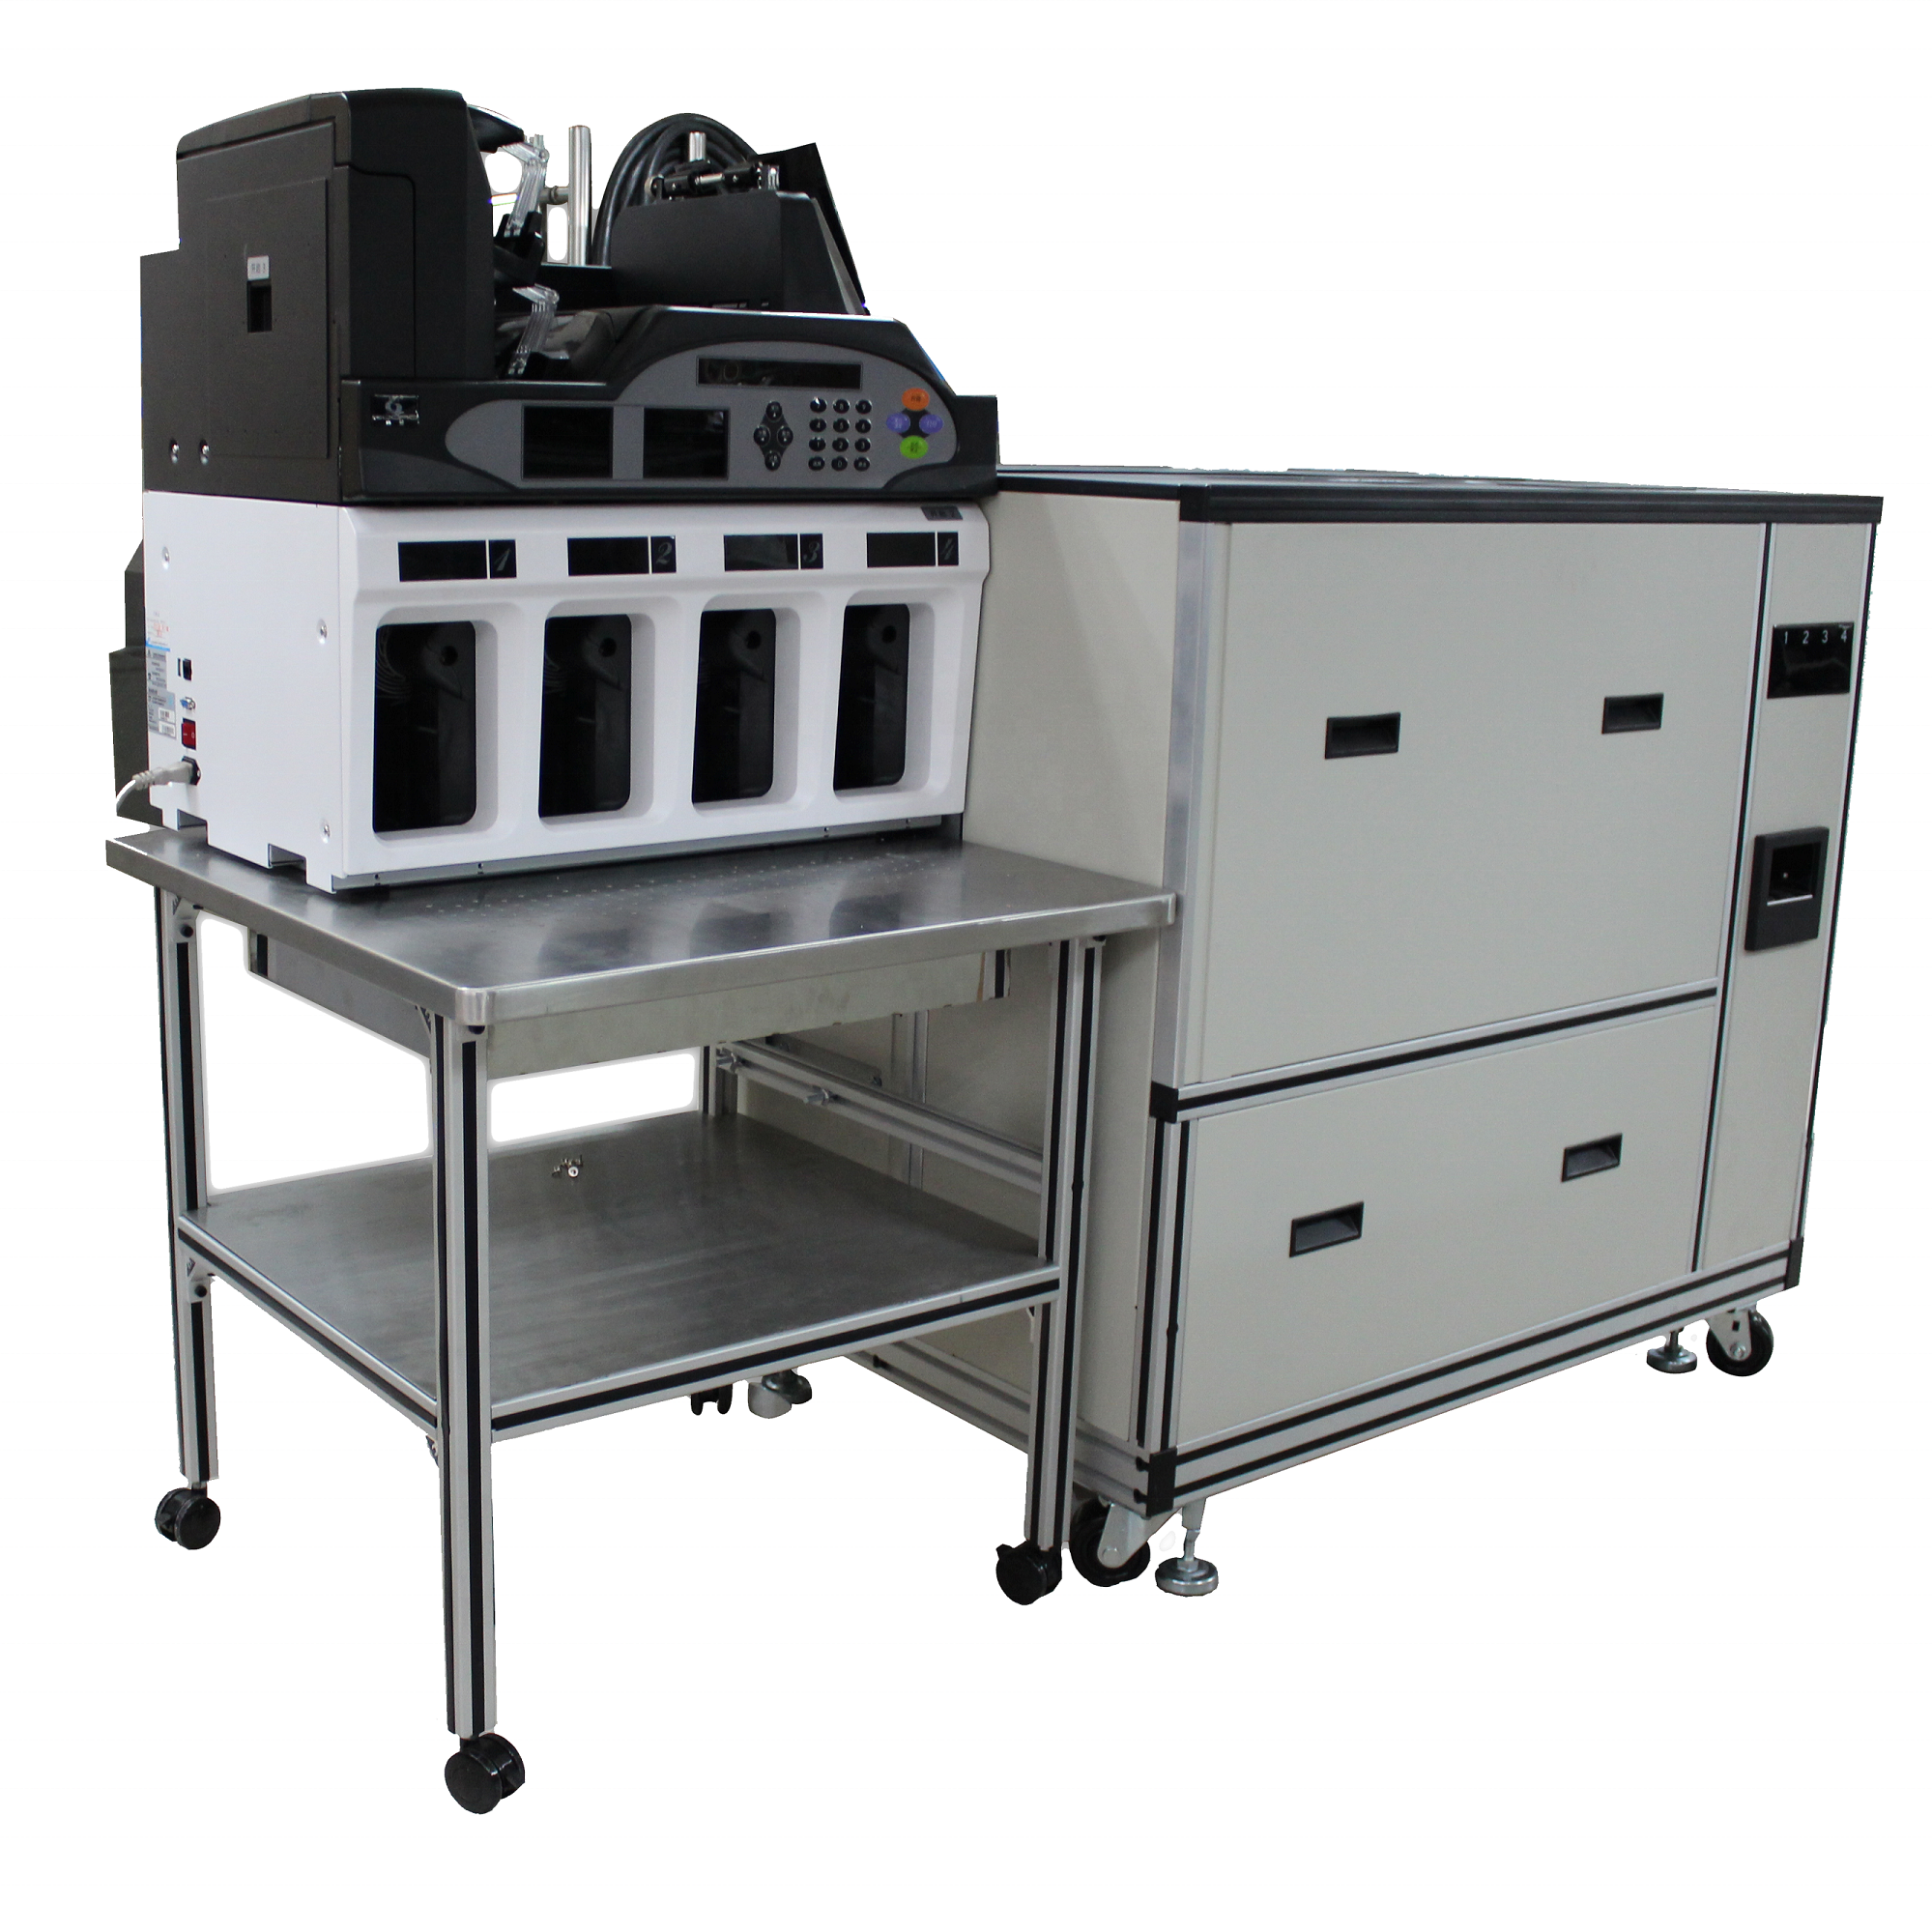 Professional Currency Processing Equipment GA-QZ8000EG Banknote Sorter and Binder for Bank